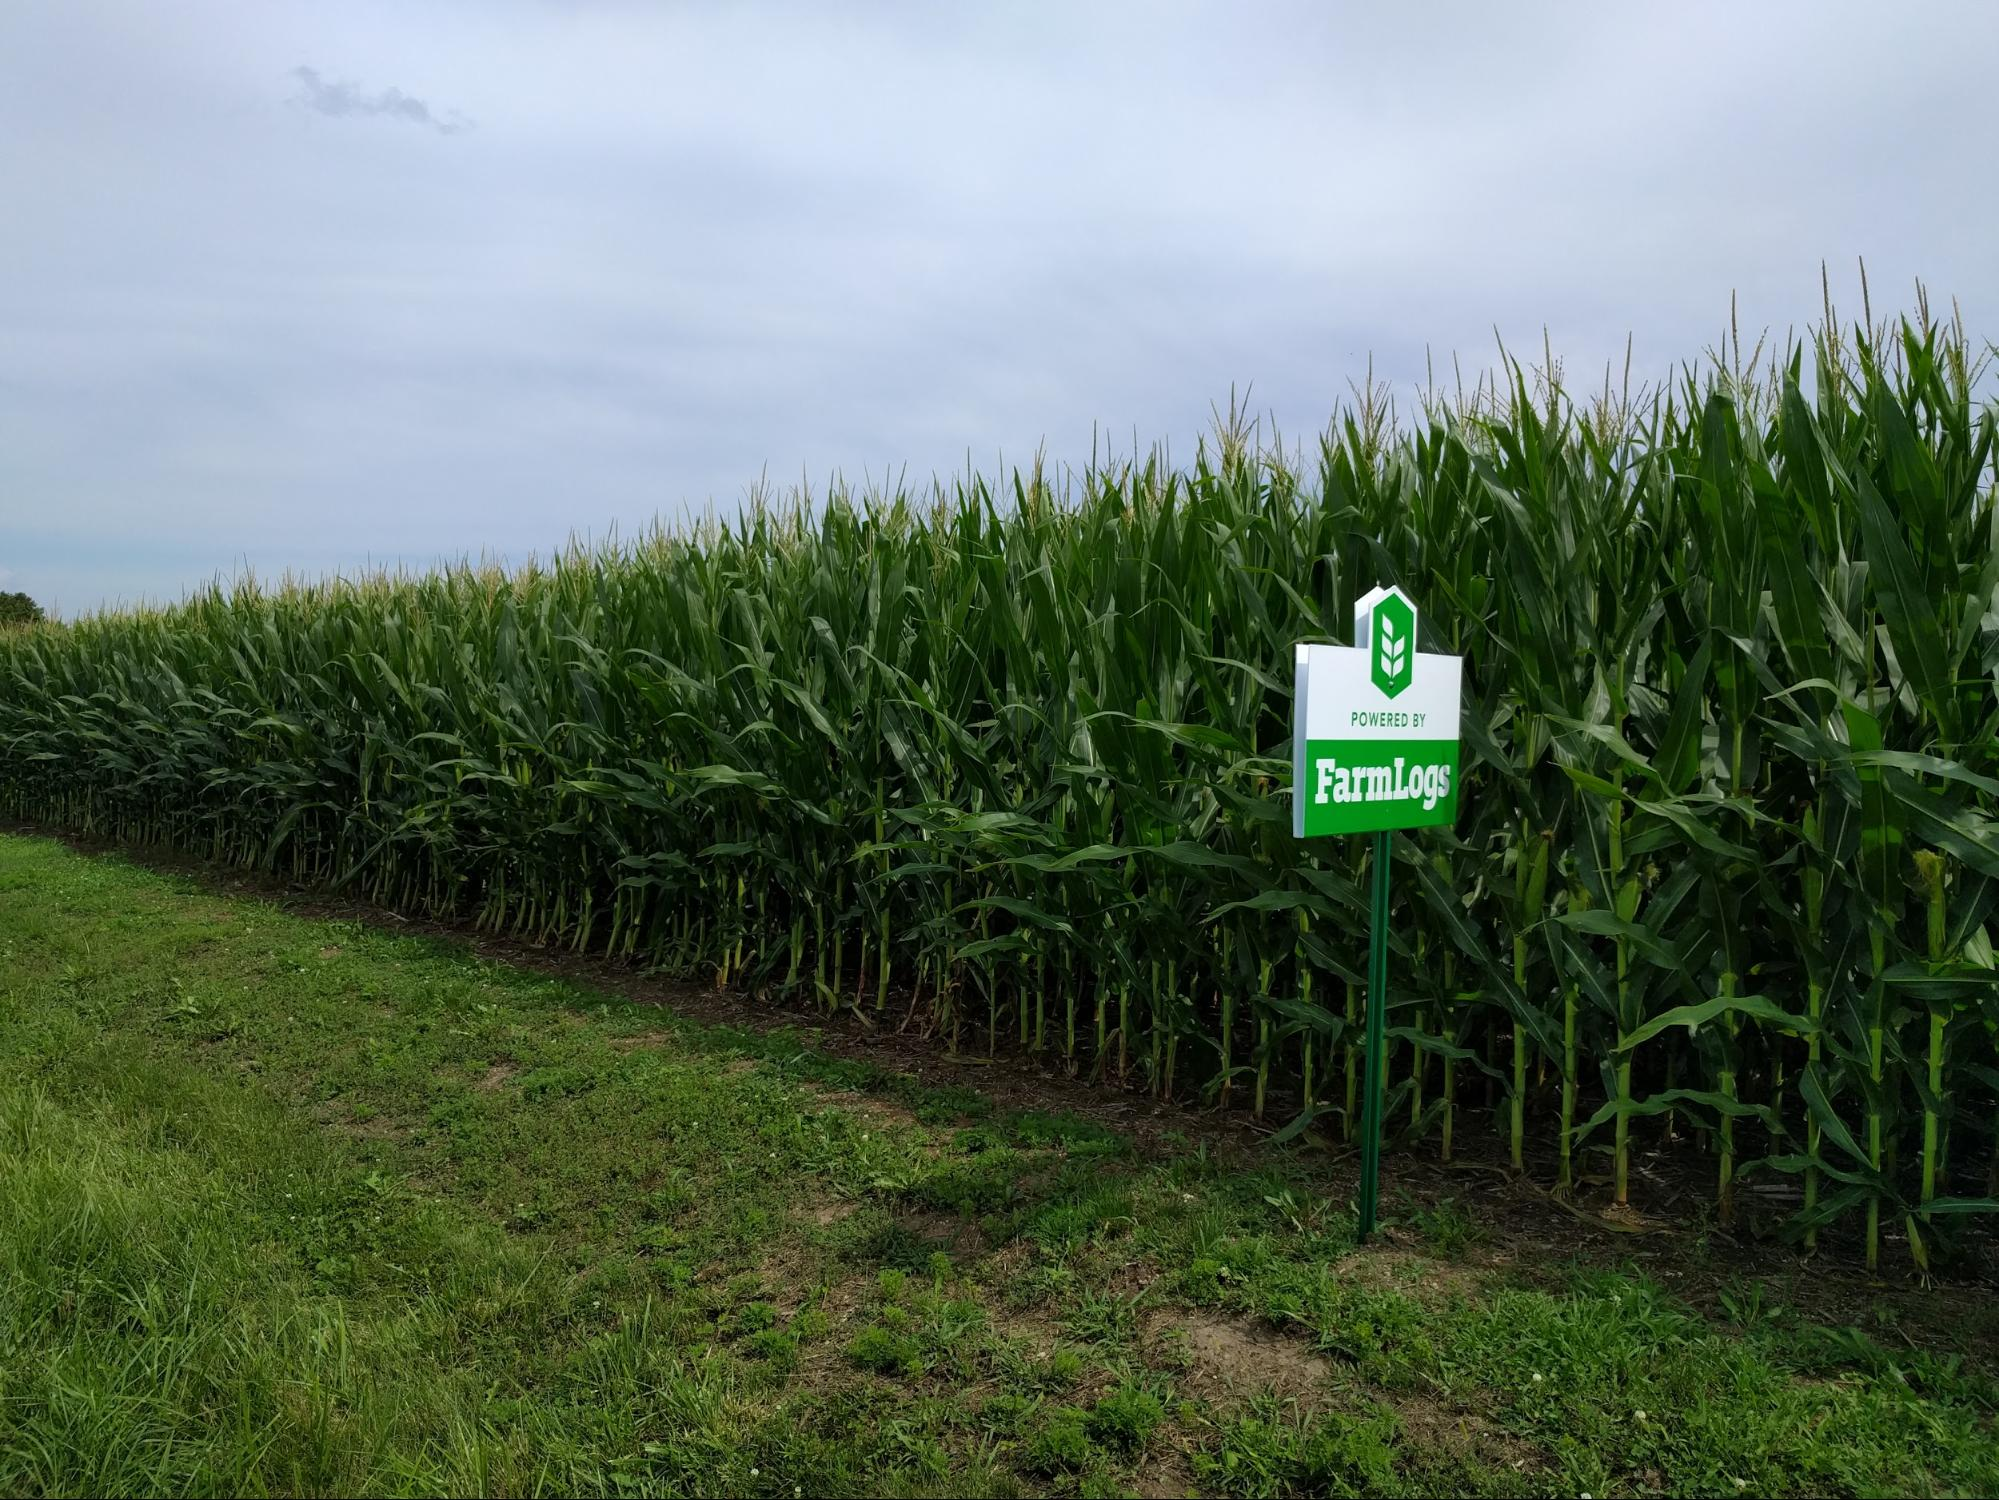 corn field with FarmLogs sign